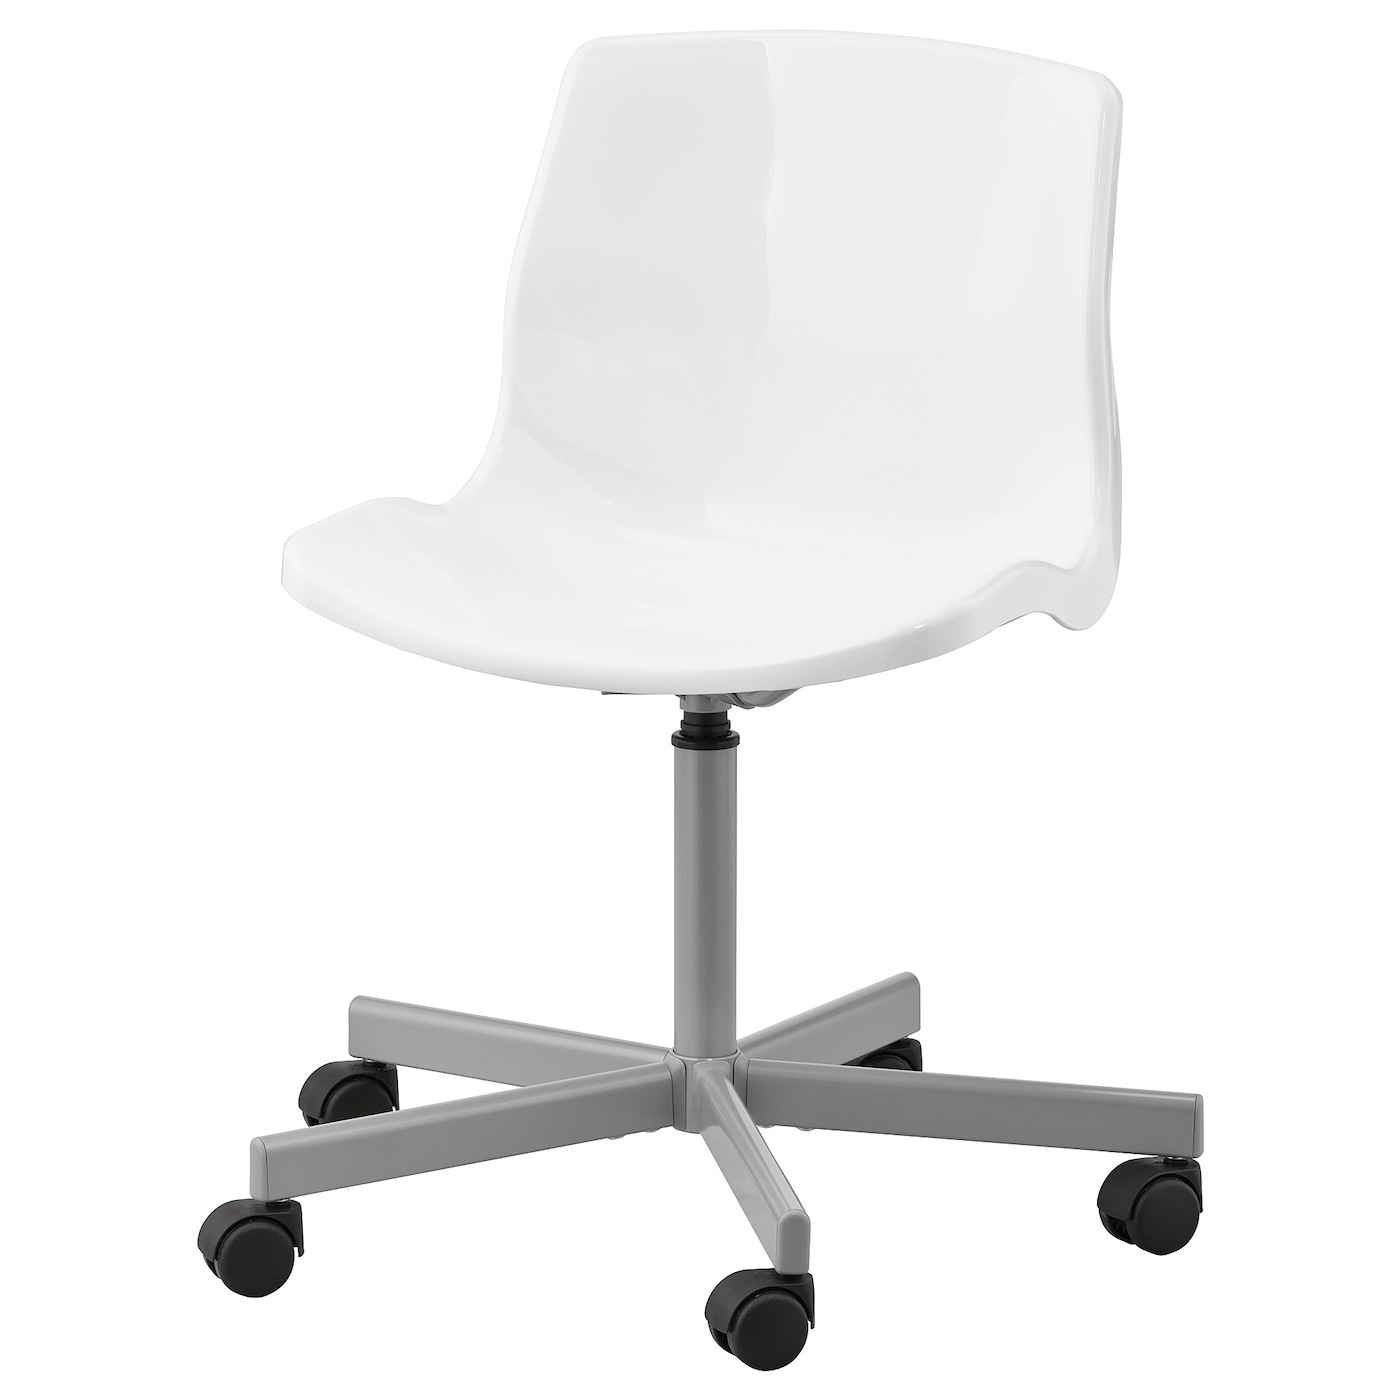 Snille Swivel Chair White